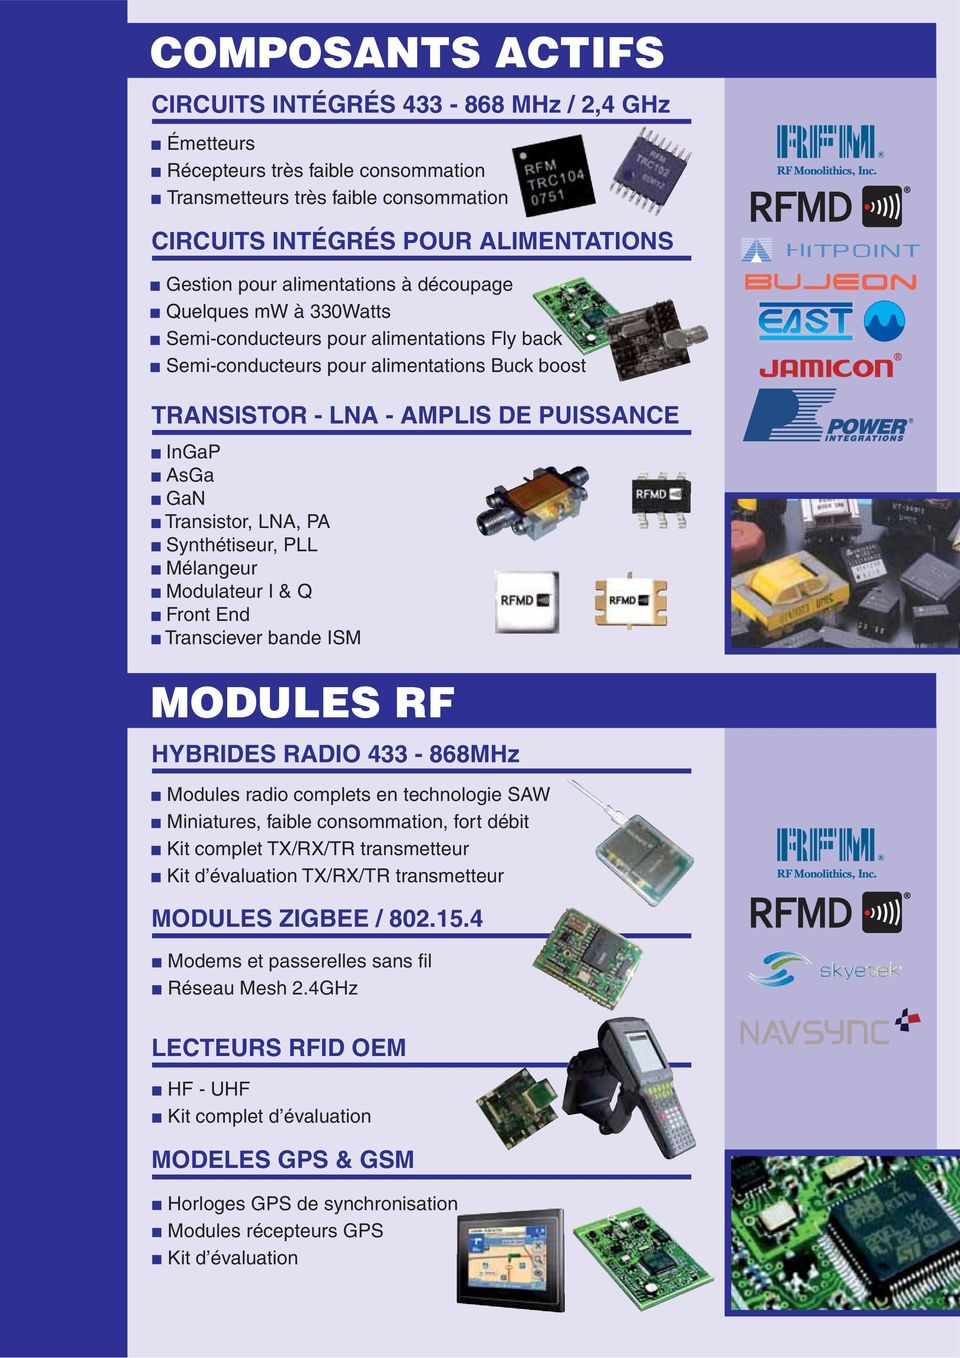 Transistor, LNA, PA Synthétiseur, PLL Mélangeur Modulateur I & Q Front End Transciever bande ISM MODULES RF HYBRIDES RADIO 433-868MHz Modules radio complets en technologie SAW Miniatures, faible